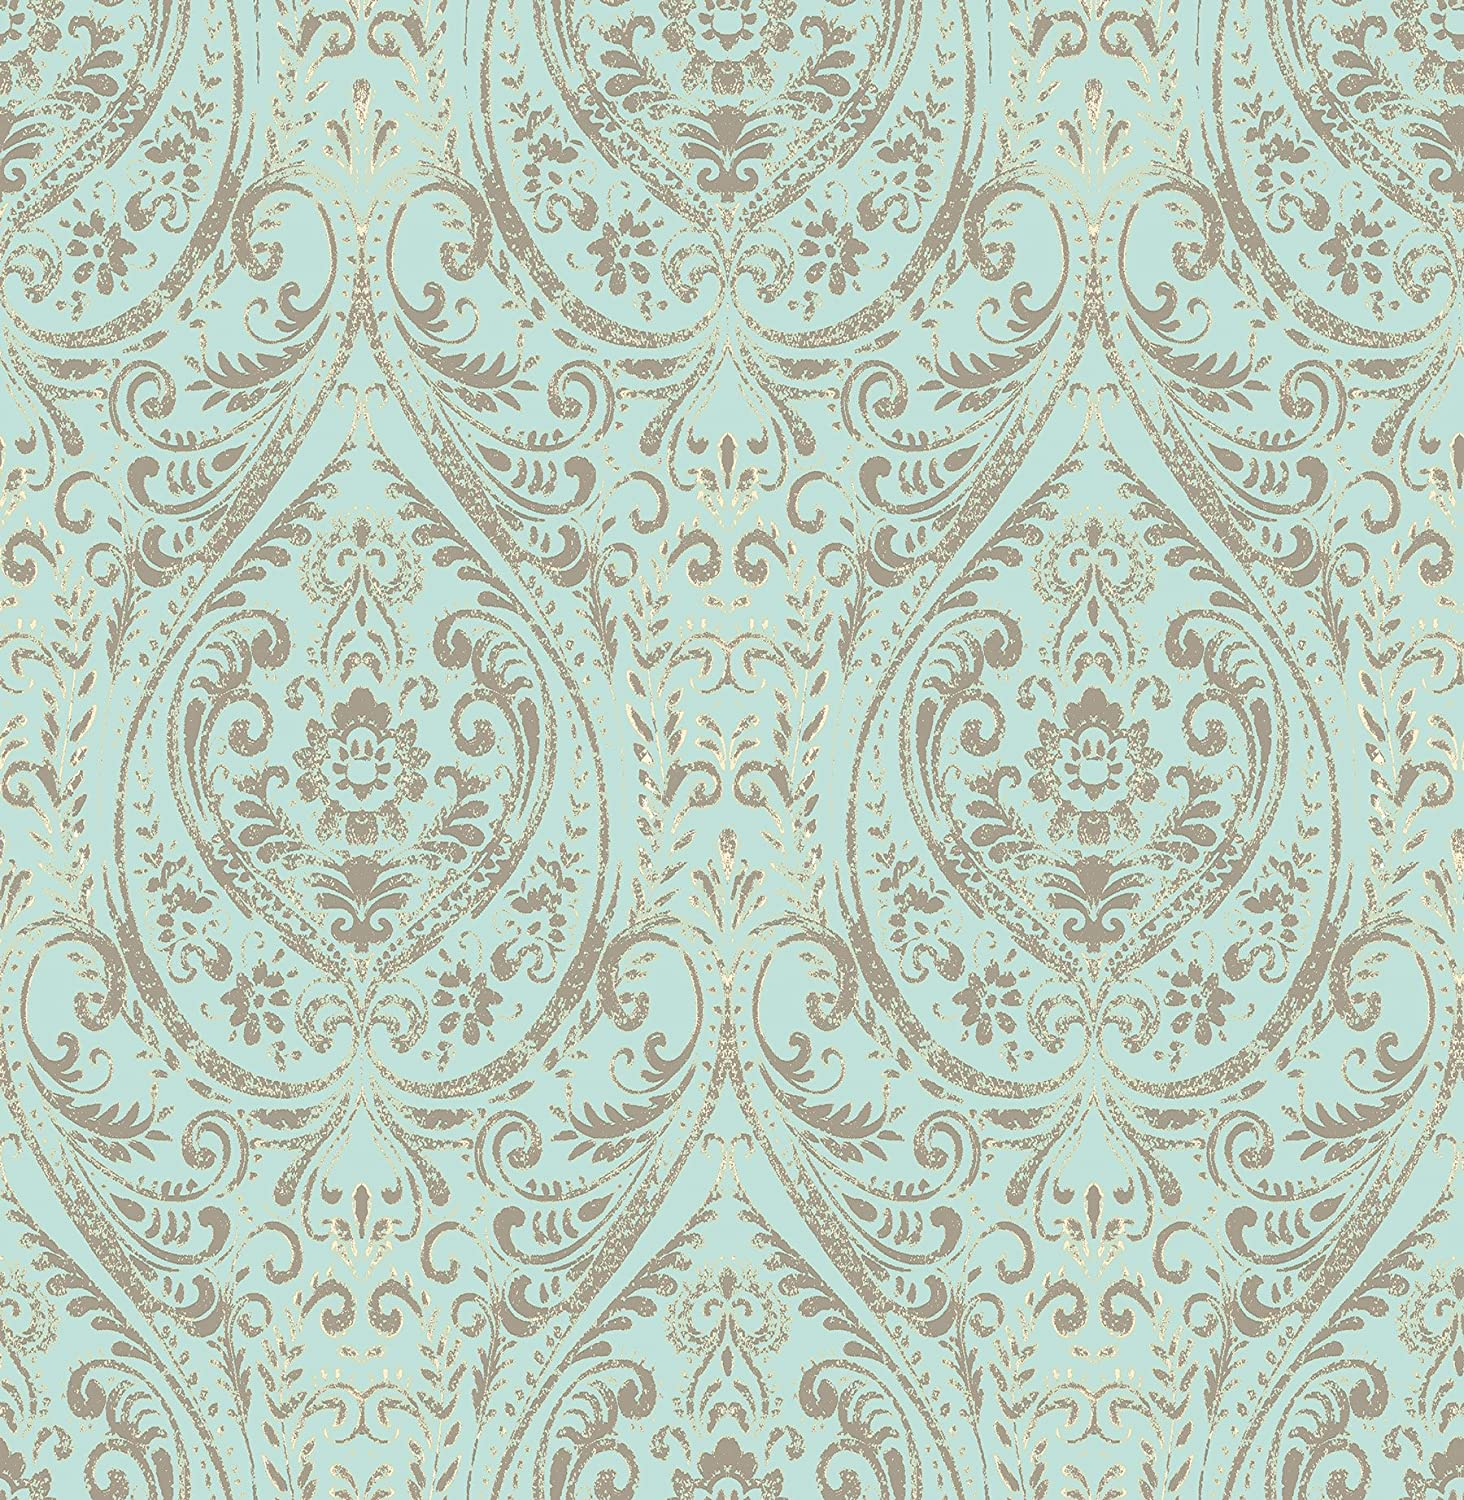 Brewster Home Nomad Damask Peel and Stick Wallpaper